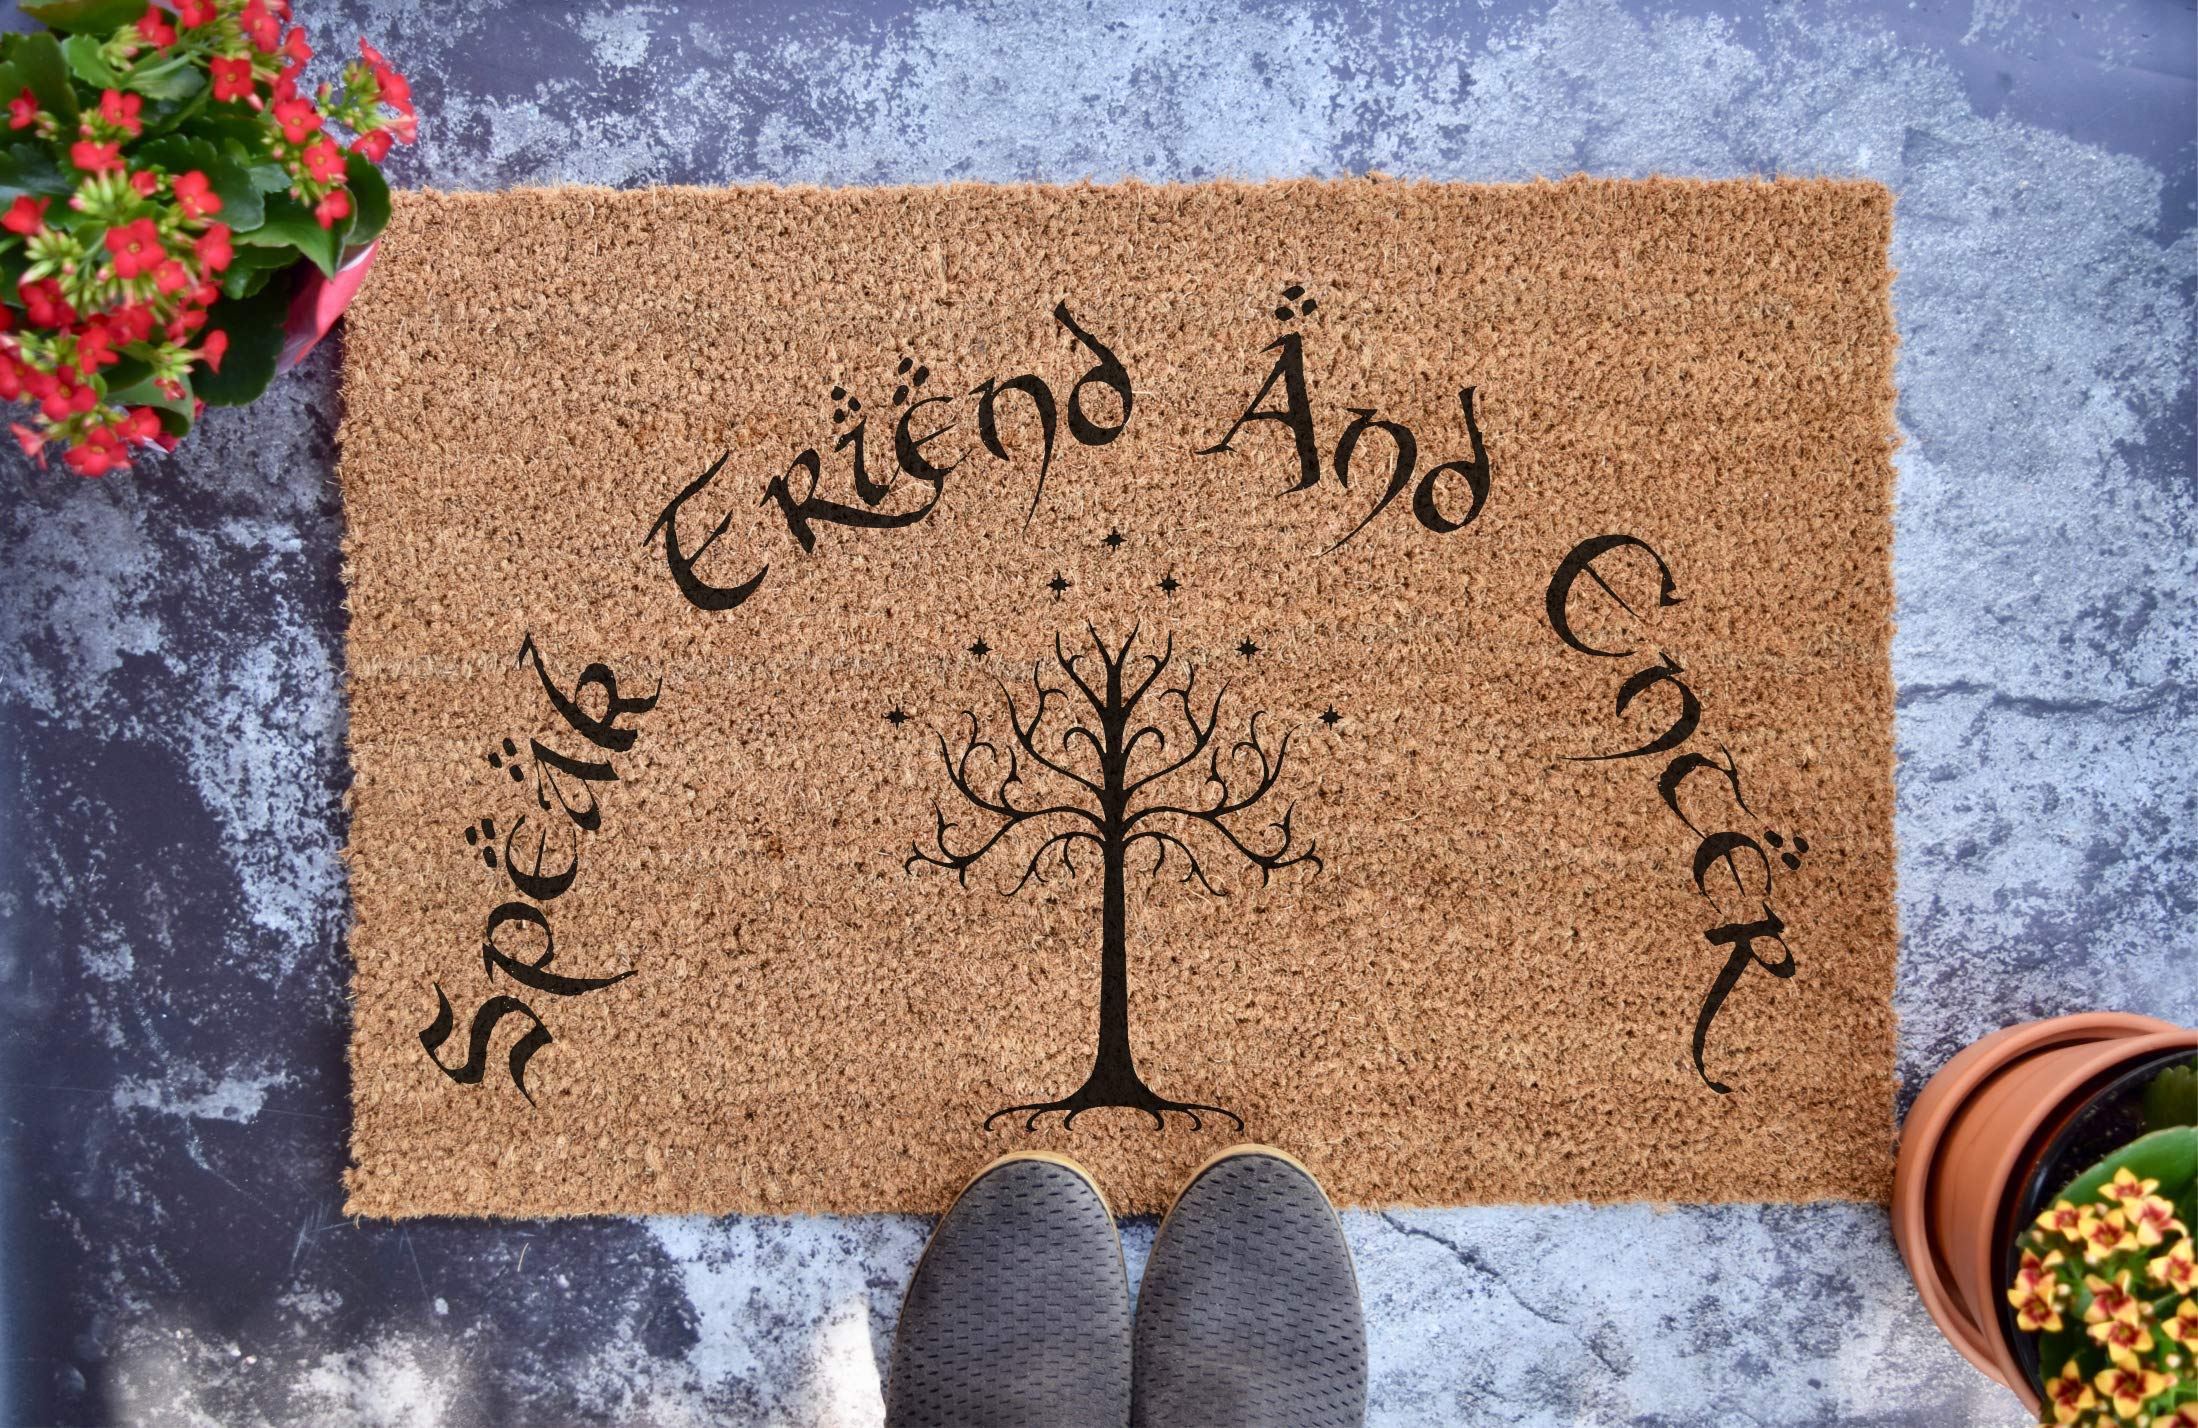 "Speak Friend And Enter - Lord of the Rings - The Hobbit - LOTR - Personalized Doormat - Wedding Gift - Housewarming Gift (24"" x 16"")"